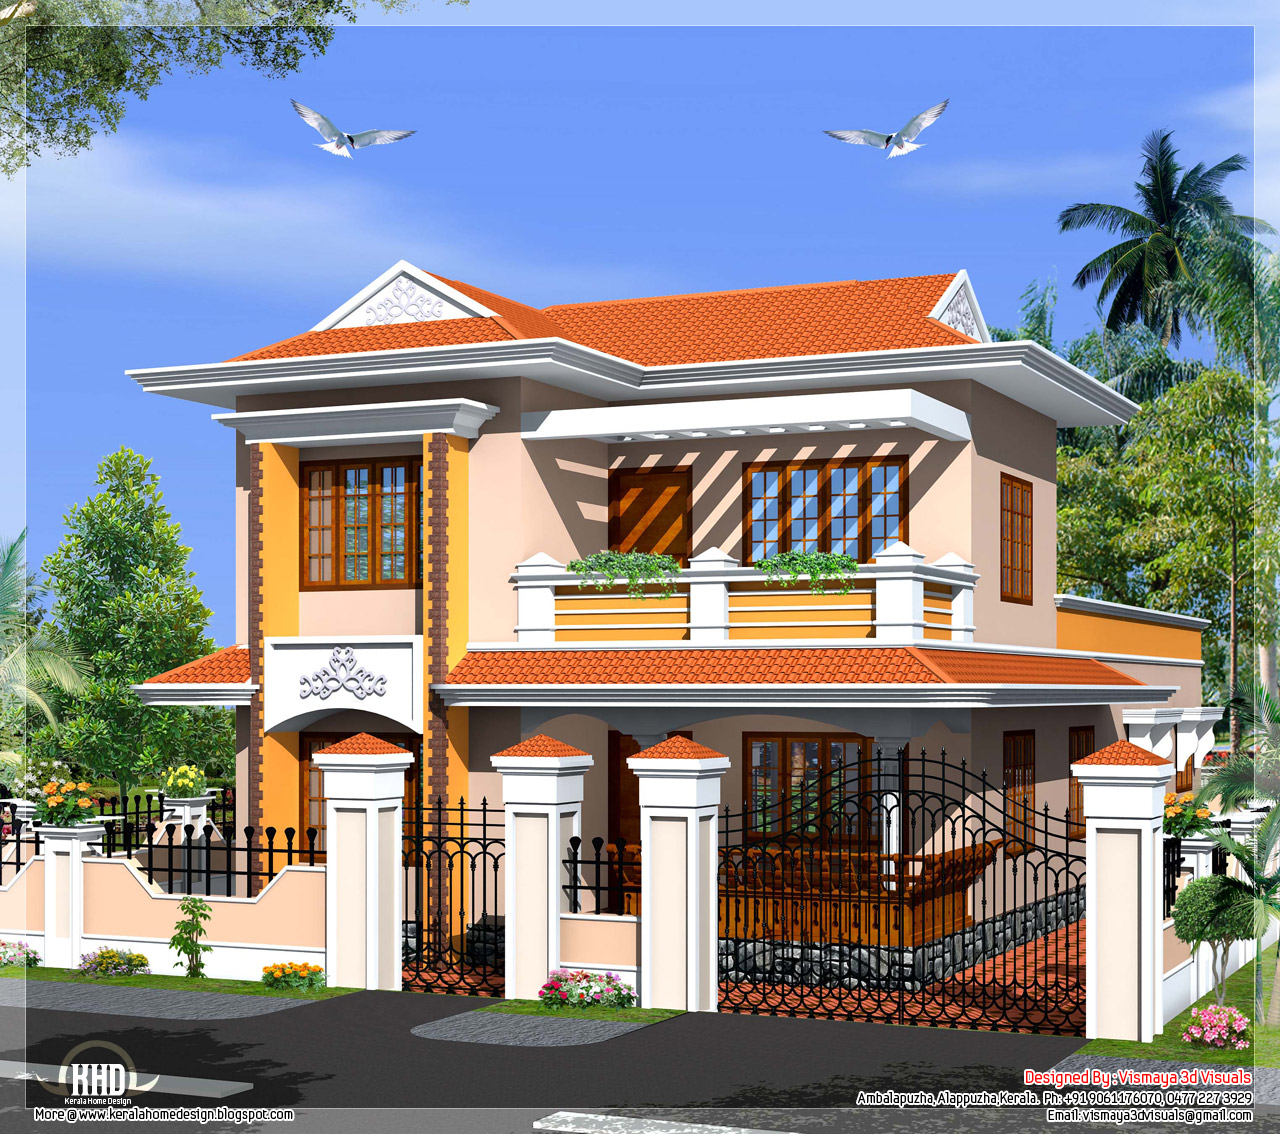 Style house 3d models for Home models in kerala